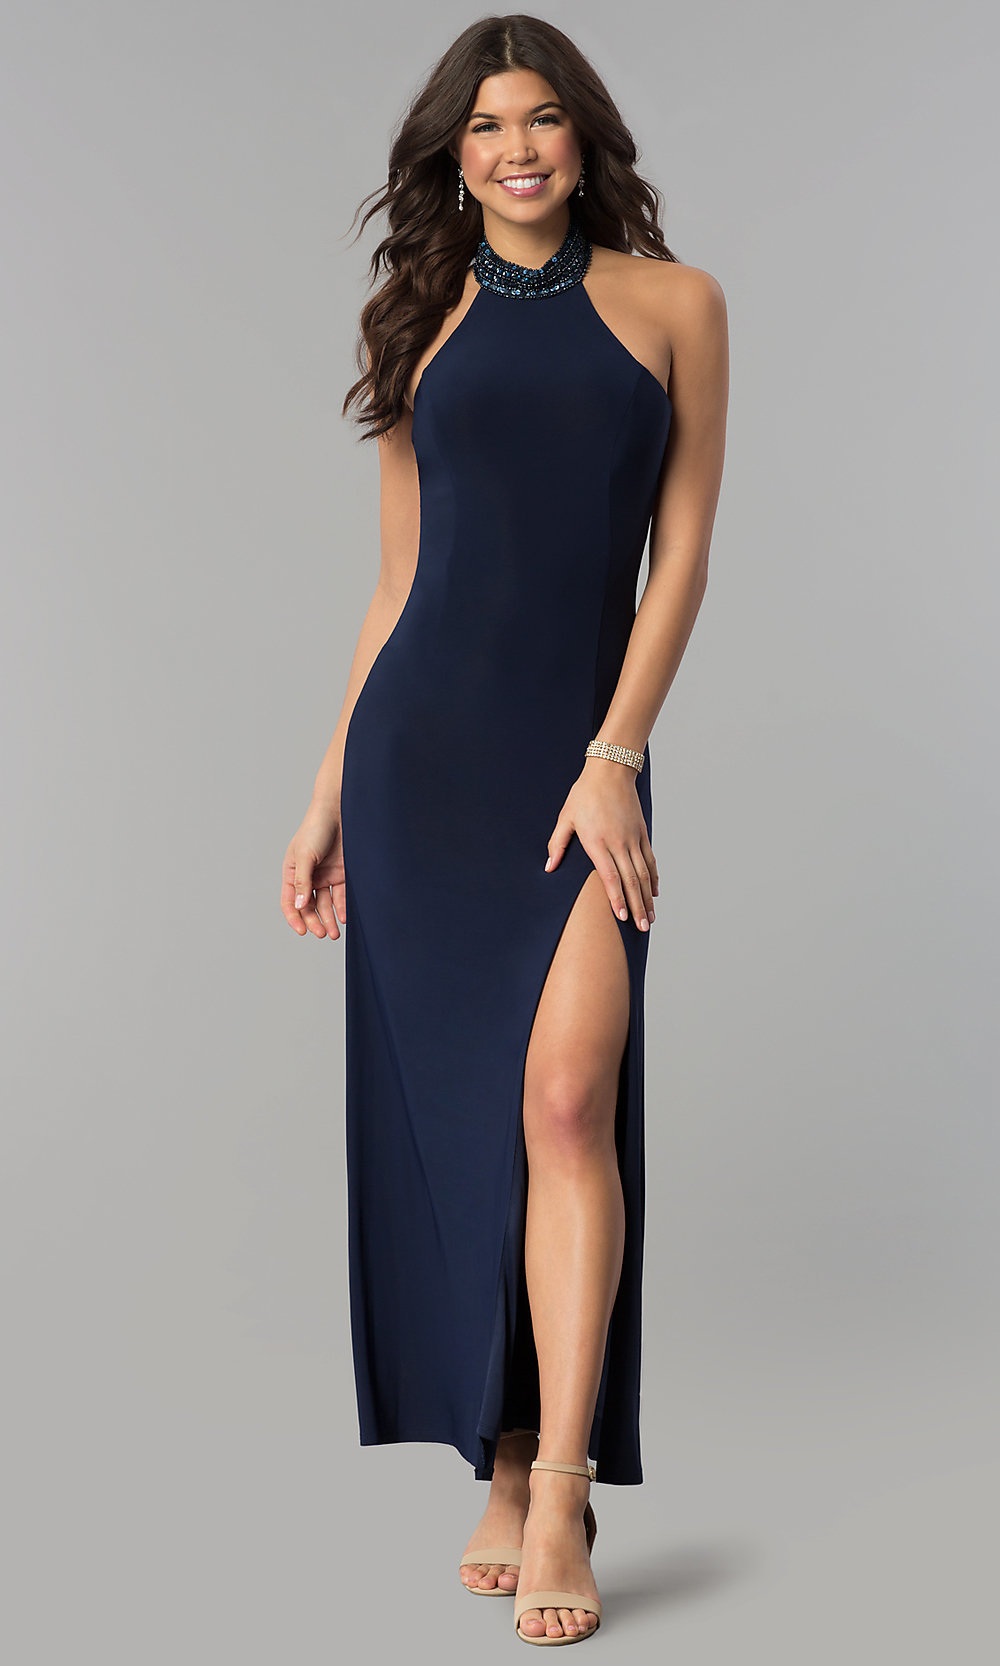 Jeweled Collar Navy Halter Long Prom Dress Promgirl